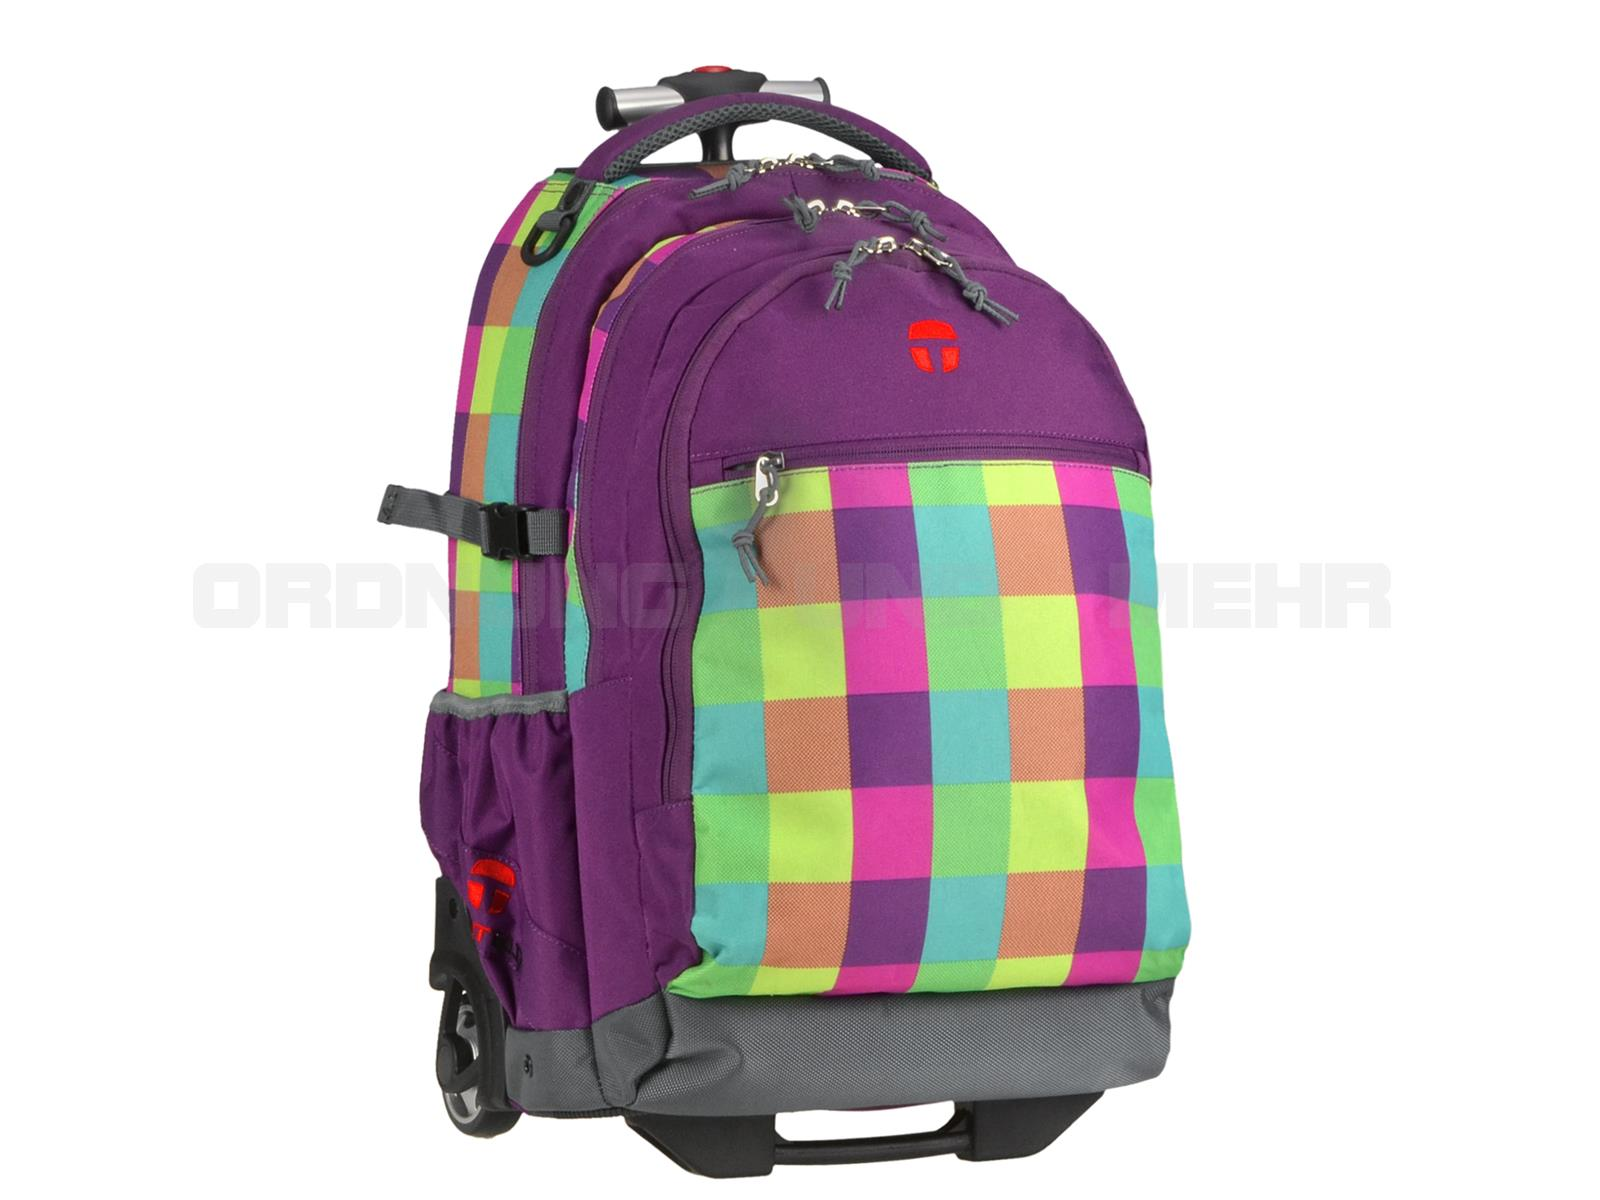 Take it Easy Rucksack Trolley SOHO in grün prink violett karo 28045-482-210